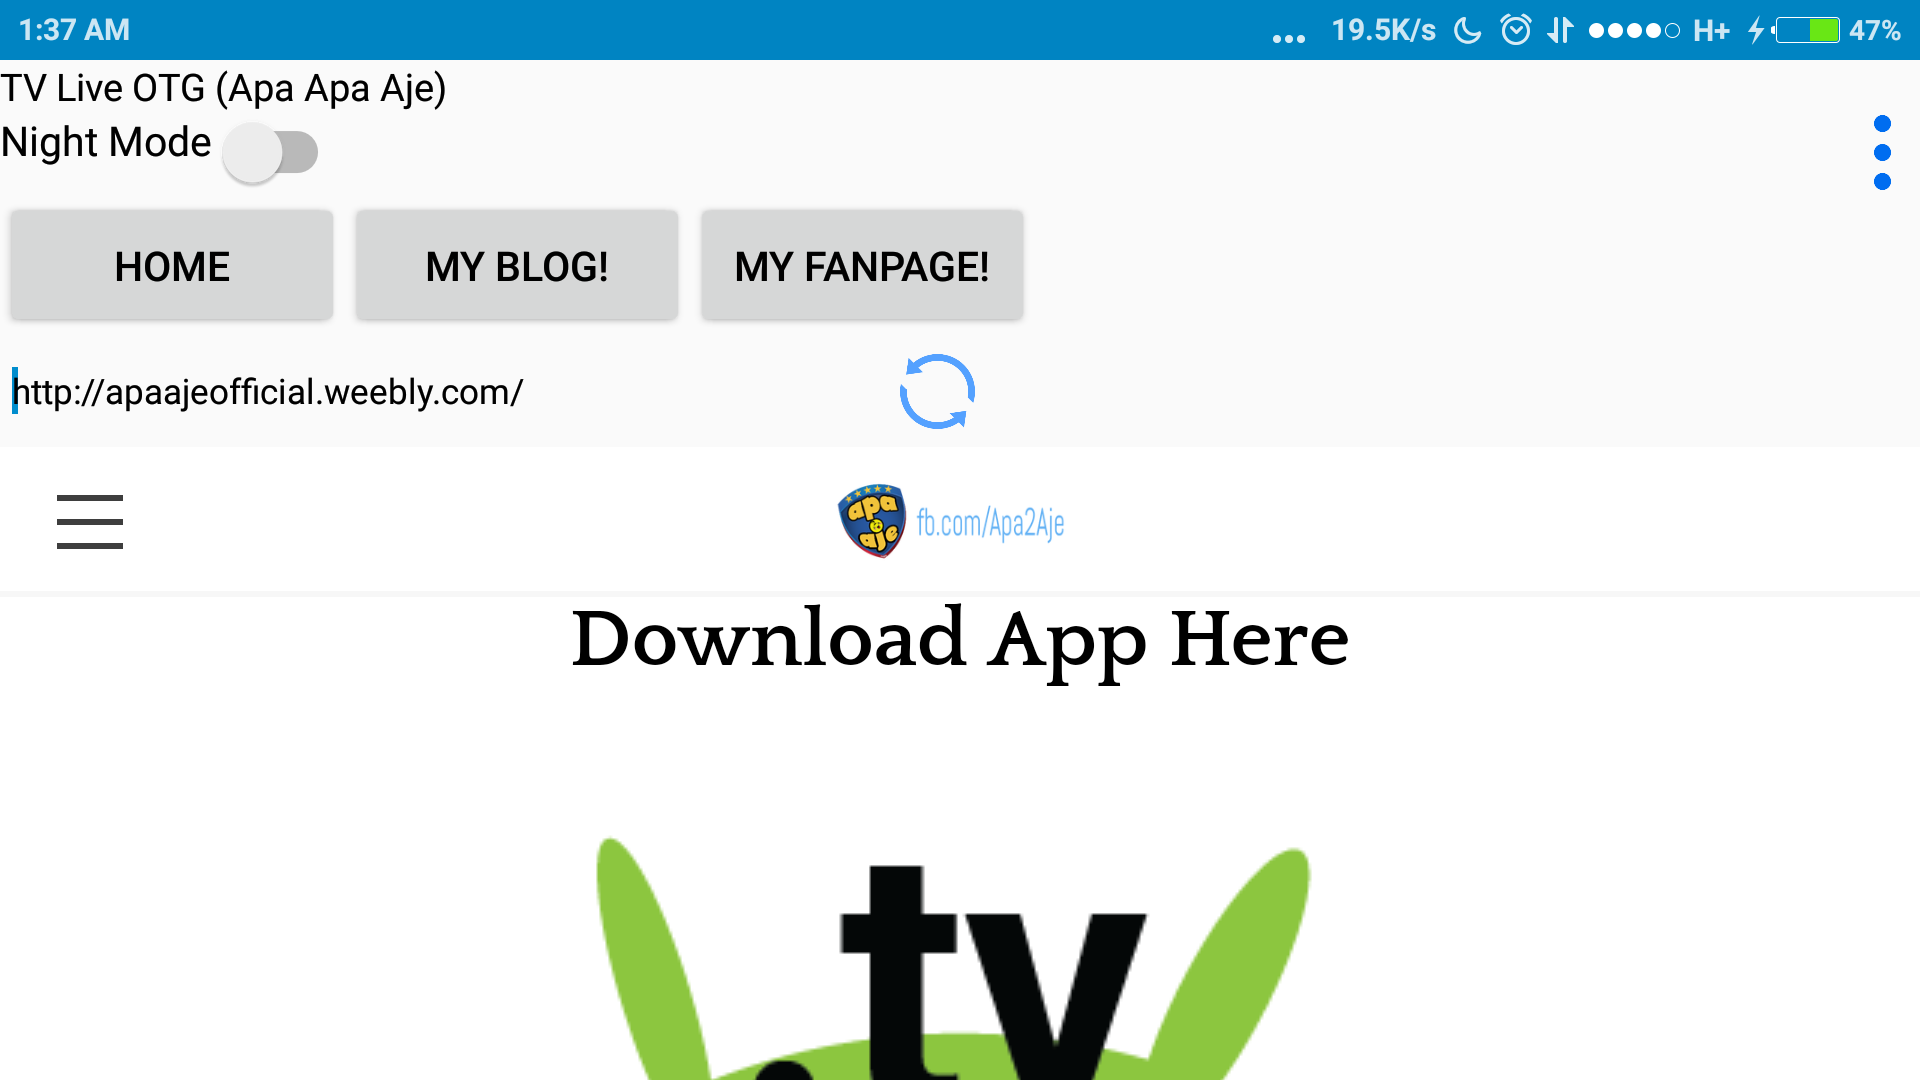 amazon com tv live otg apa aje appstore for android